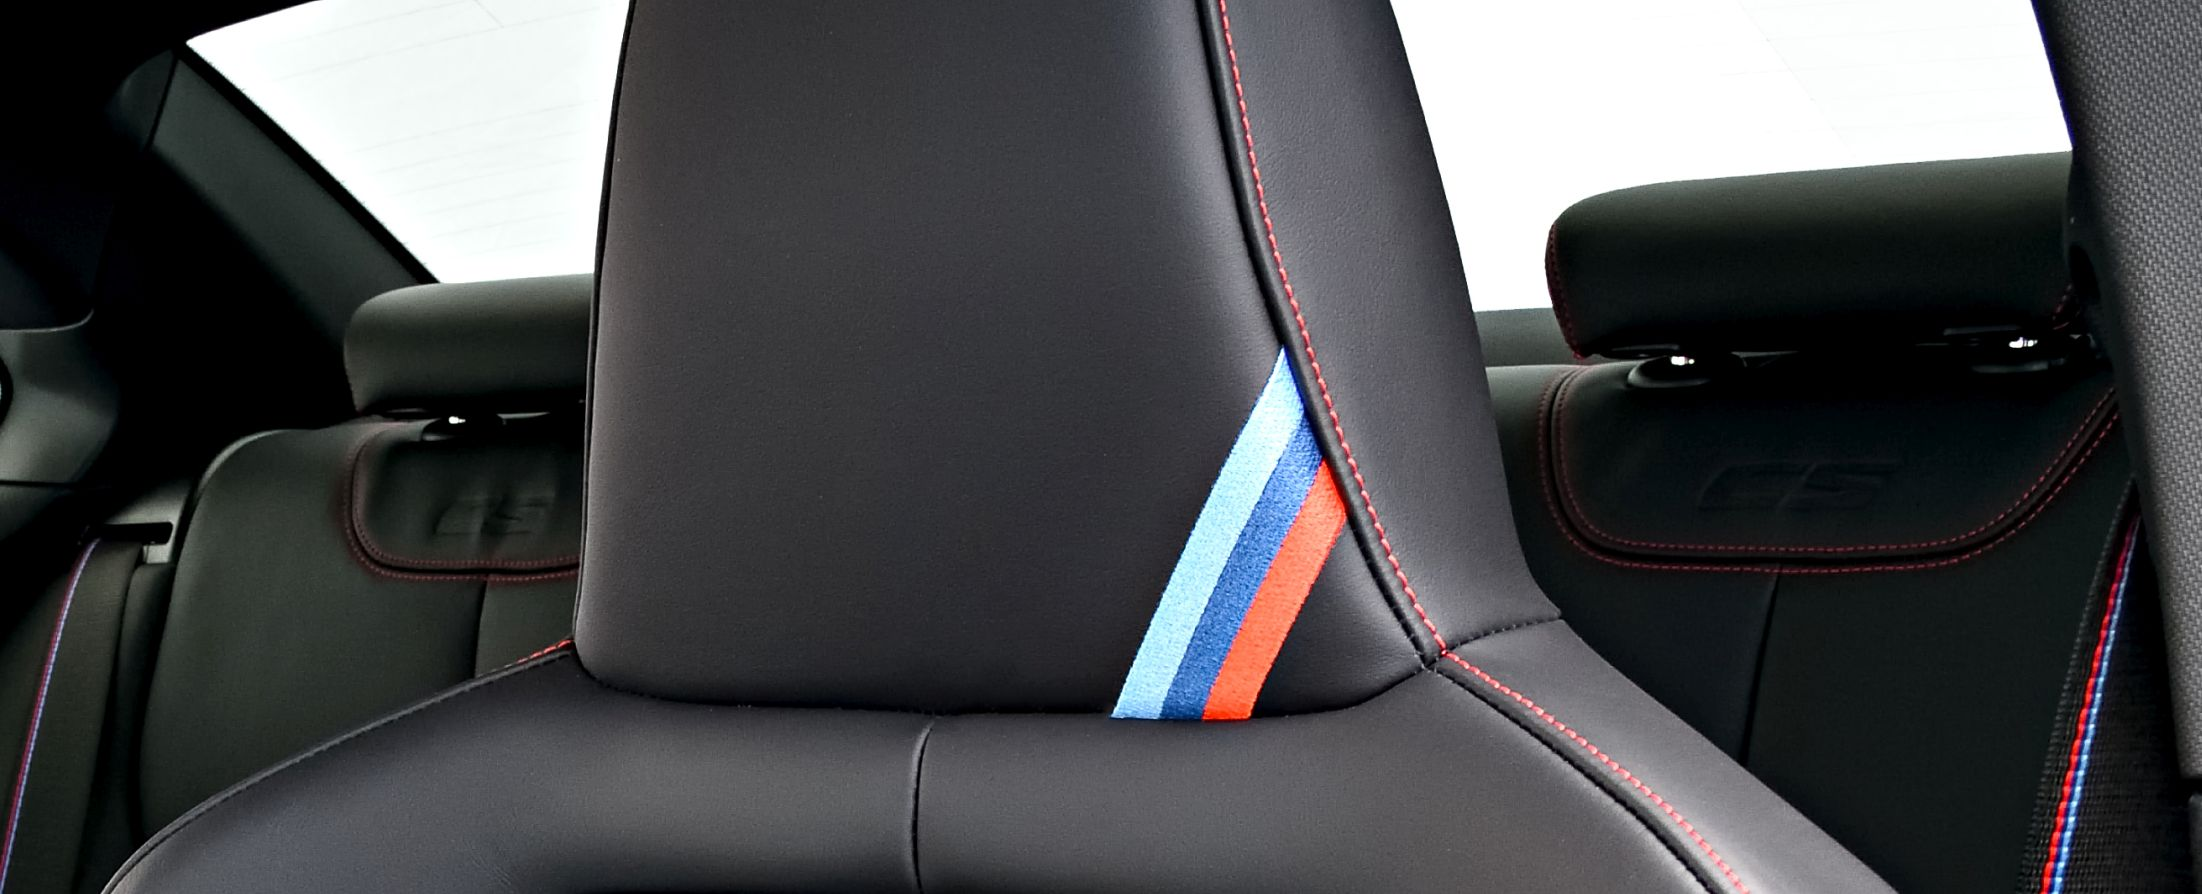 Name:  M2CS_FrontSeats_Excerpt.jpg